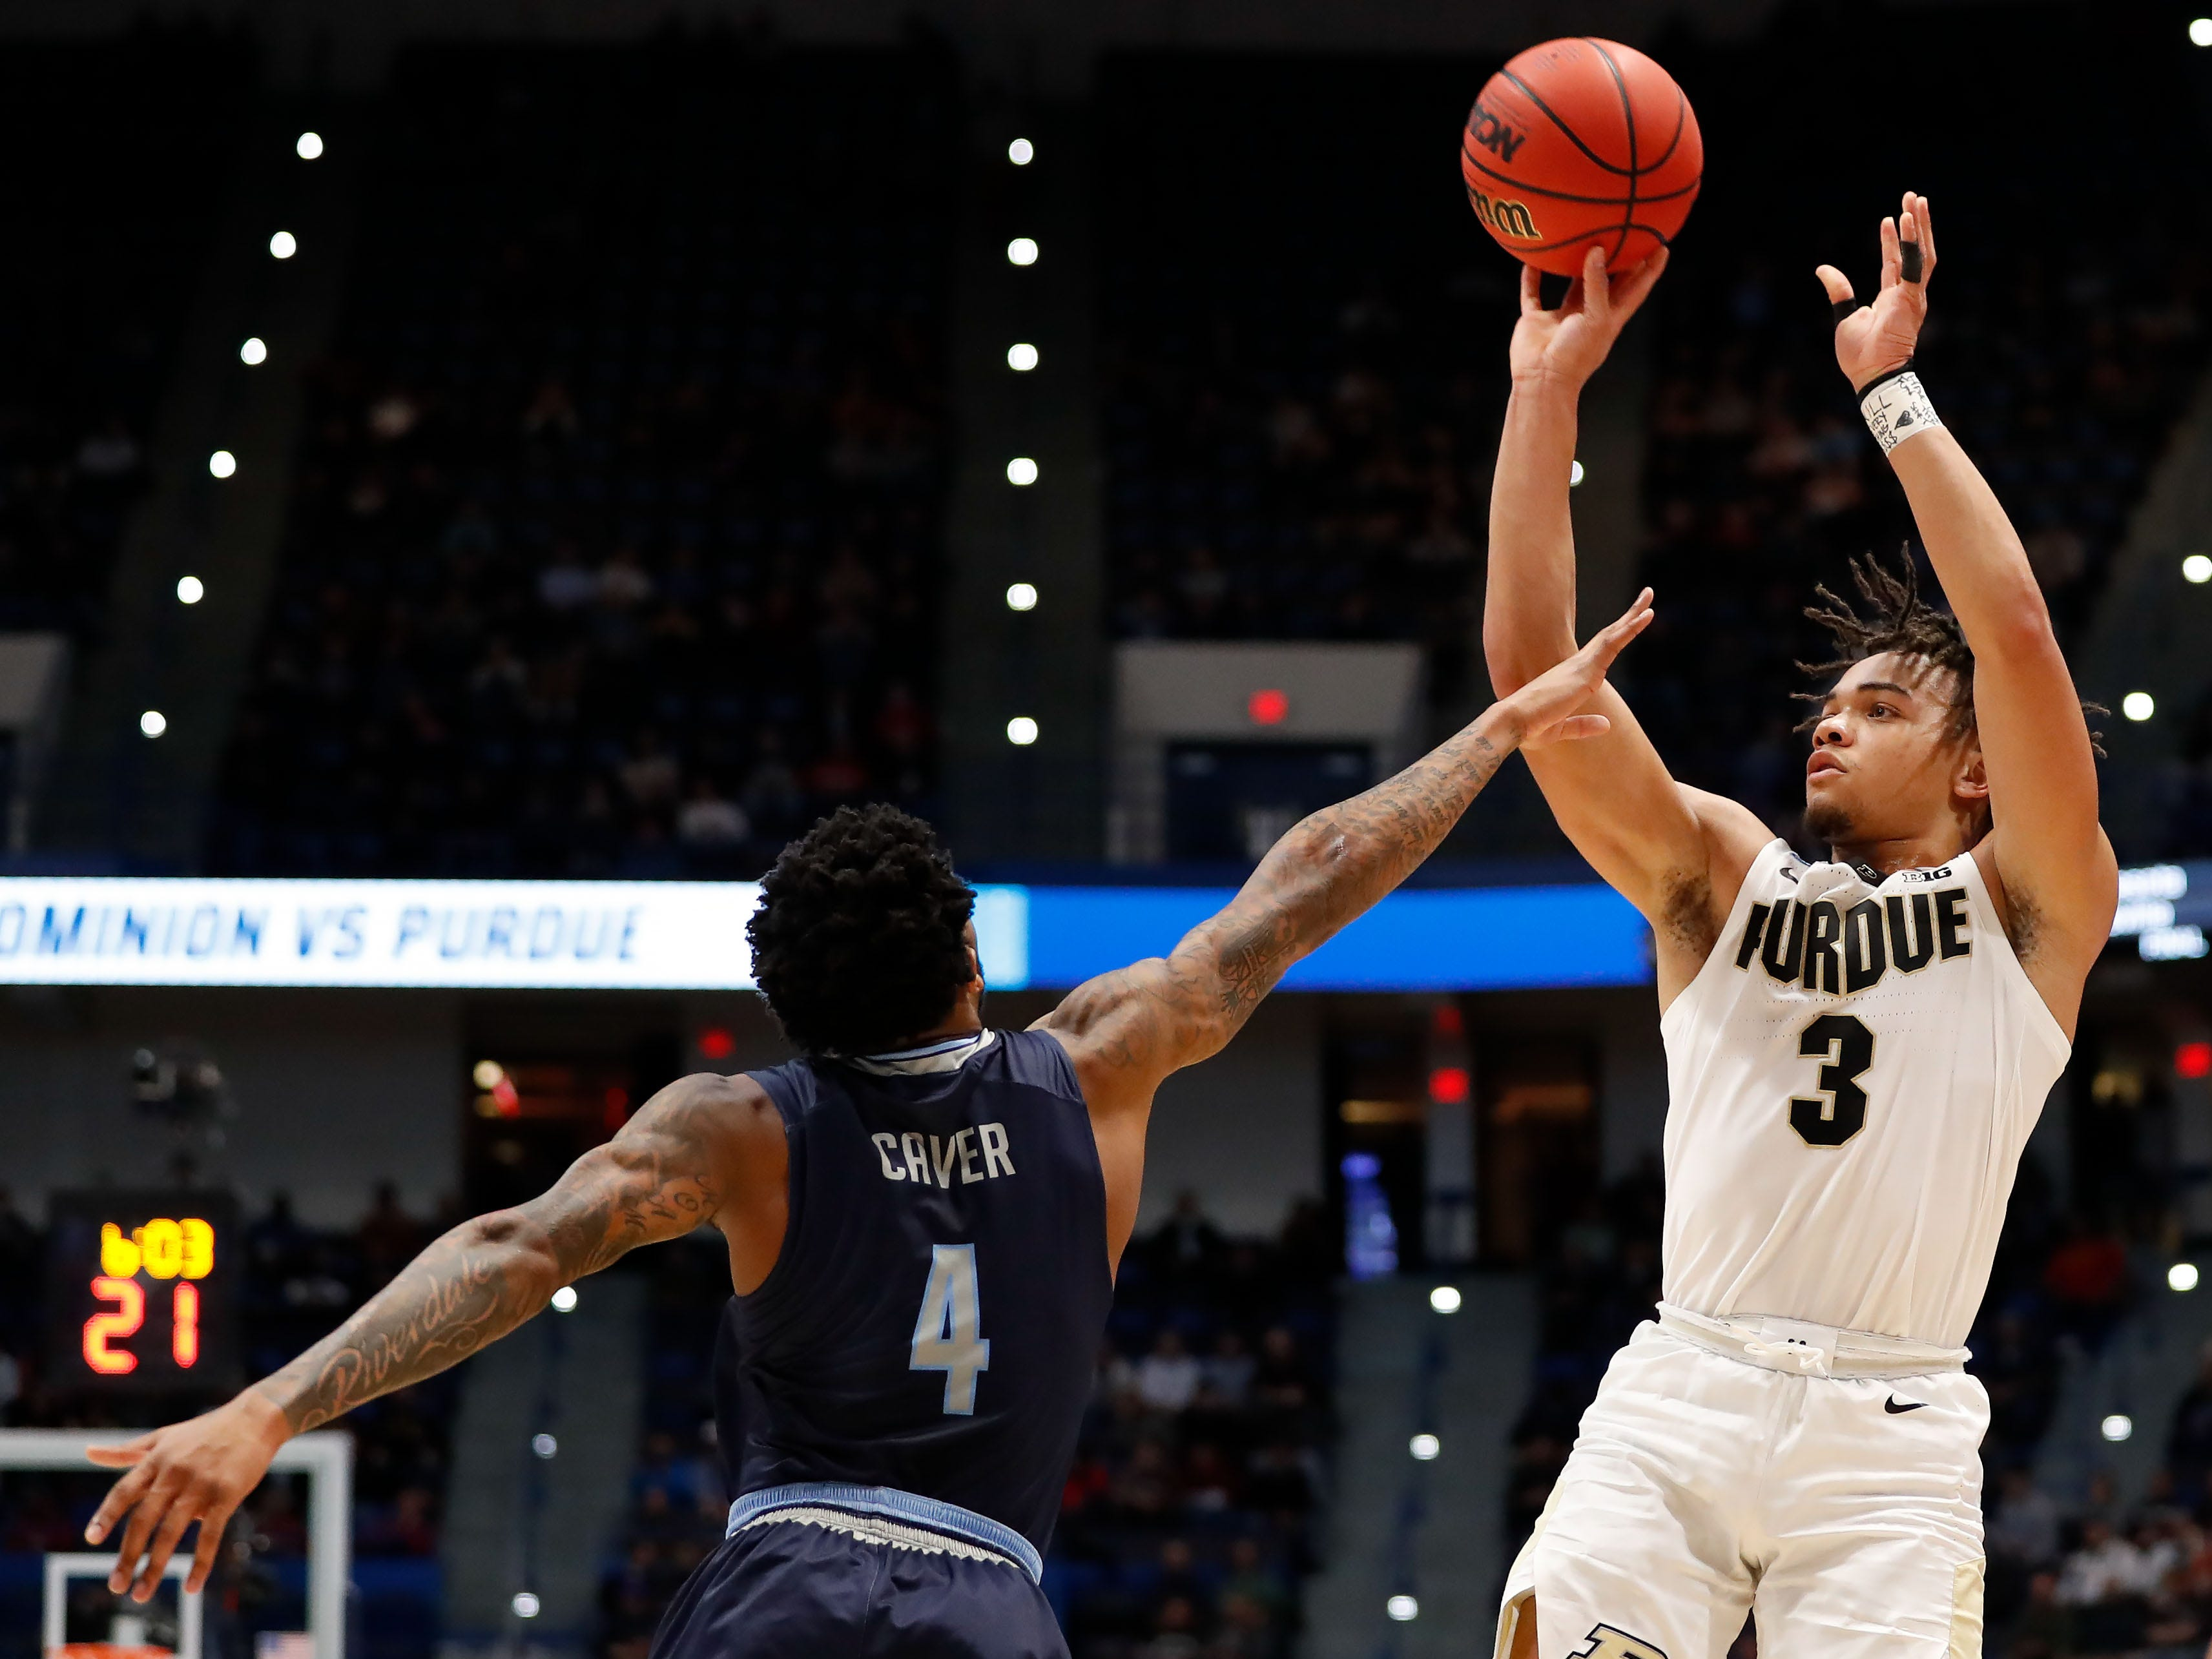 Purdue Boilermakers guard Carsen Edwards (3) attempts a shot over Old Dominion Monarchs guard Ahmad Caver (4) during the first half of a game in the first round of the 2019 NCAA Tournament at XL Center.